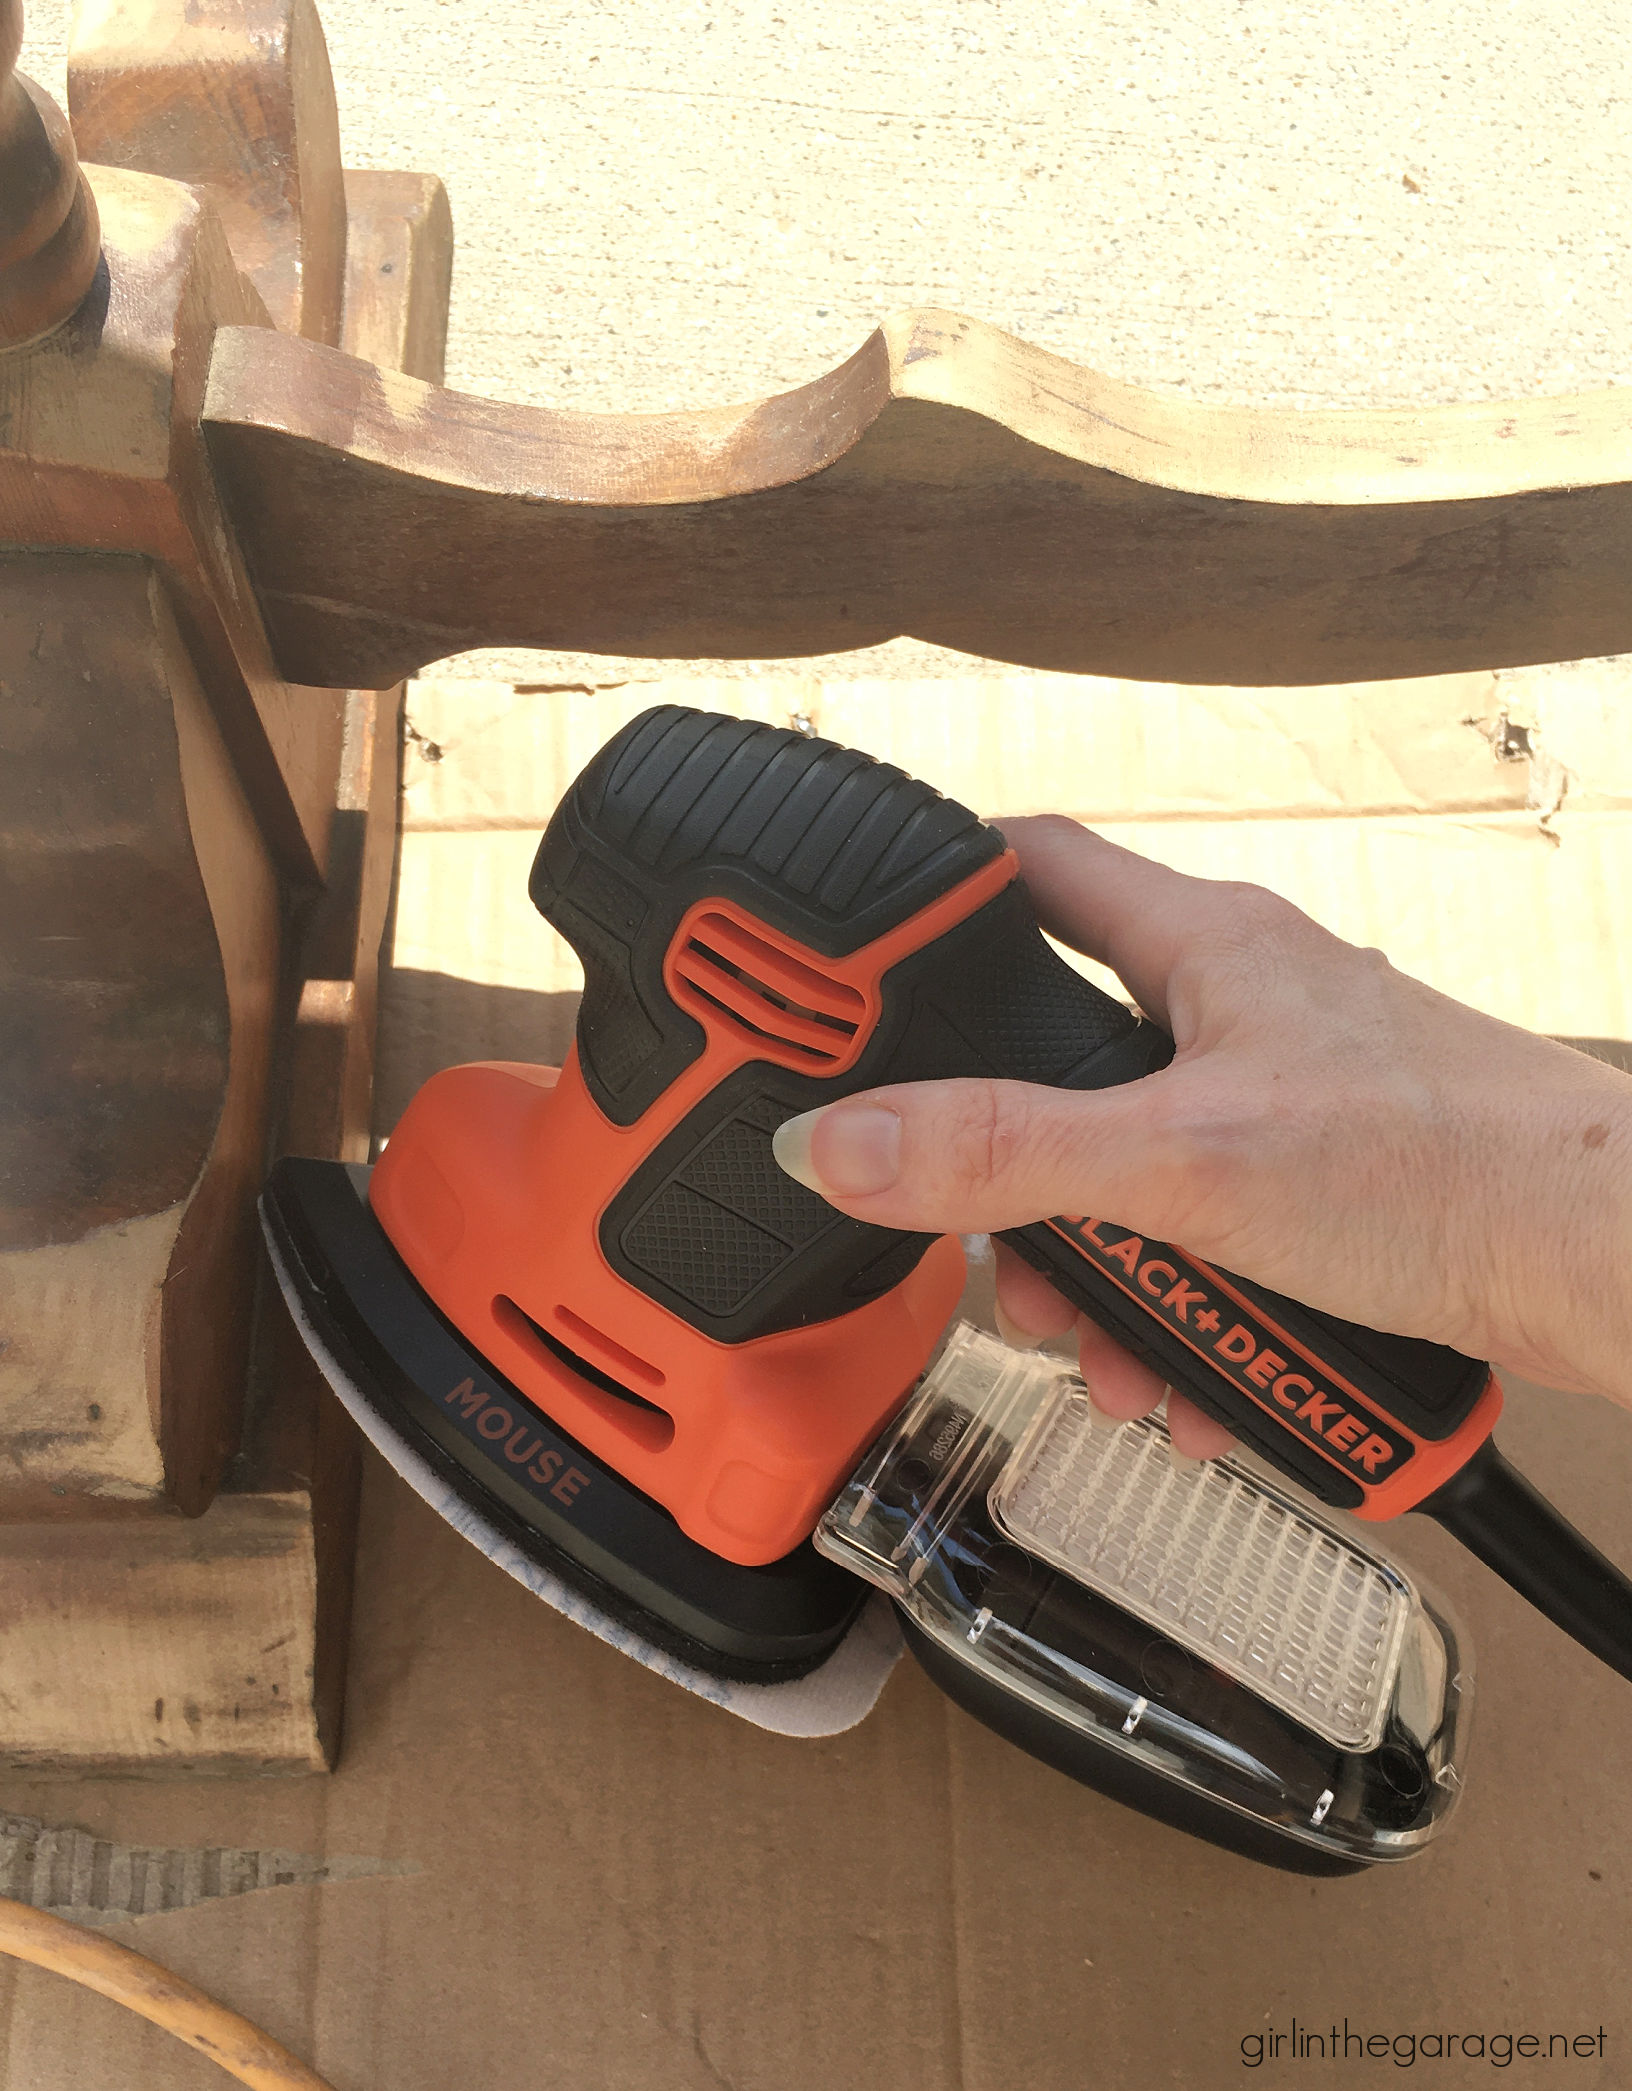 How to use a detail sander on wood furniture - Girl in the Garage